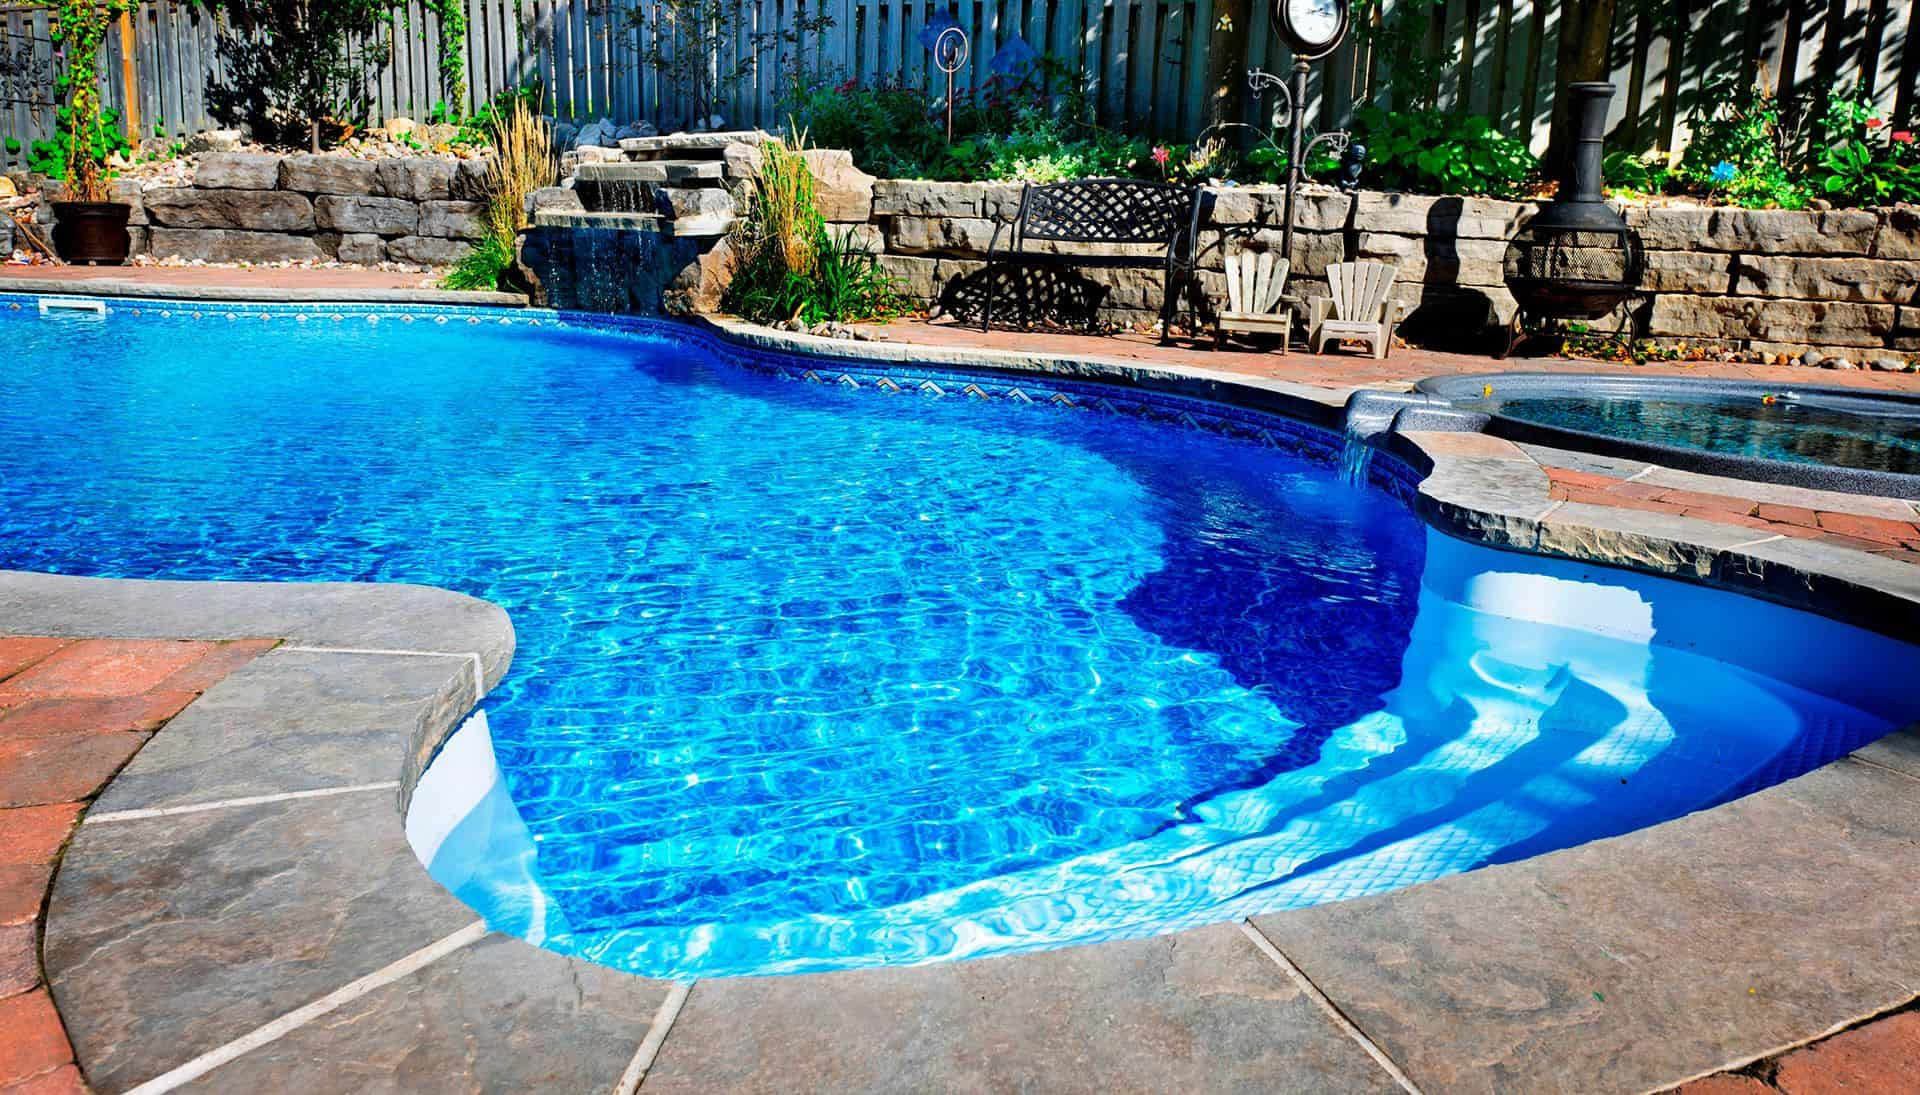 Well maintained pool after pool repair service